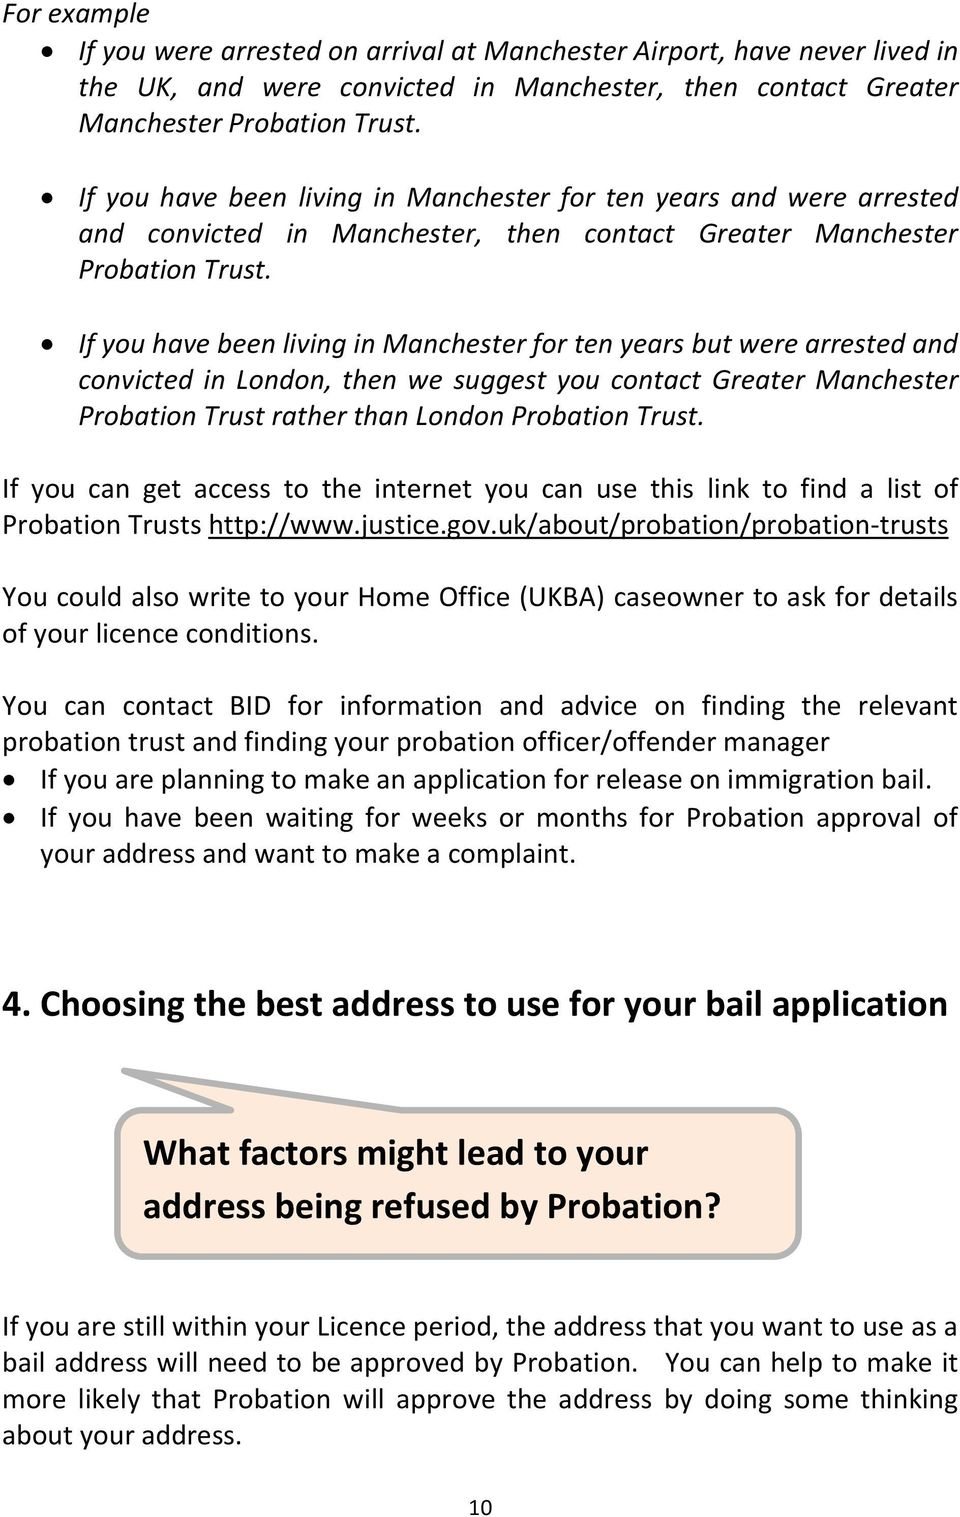 If you have been living in Manchester for ten years but were arrested and convicted in London, then we suggest you contact Greater Manchester Probation Trust rather than London Probation Trust.